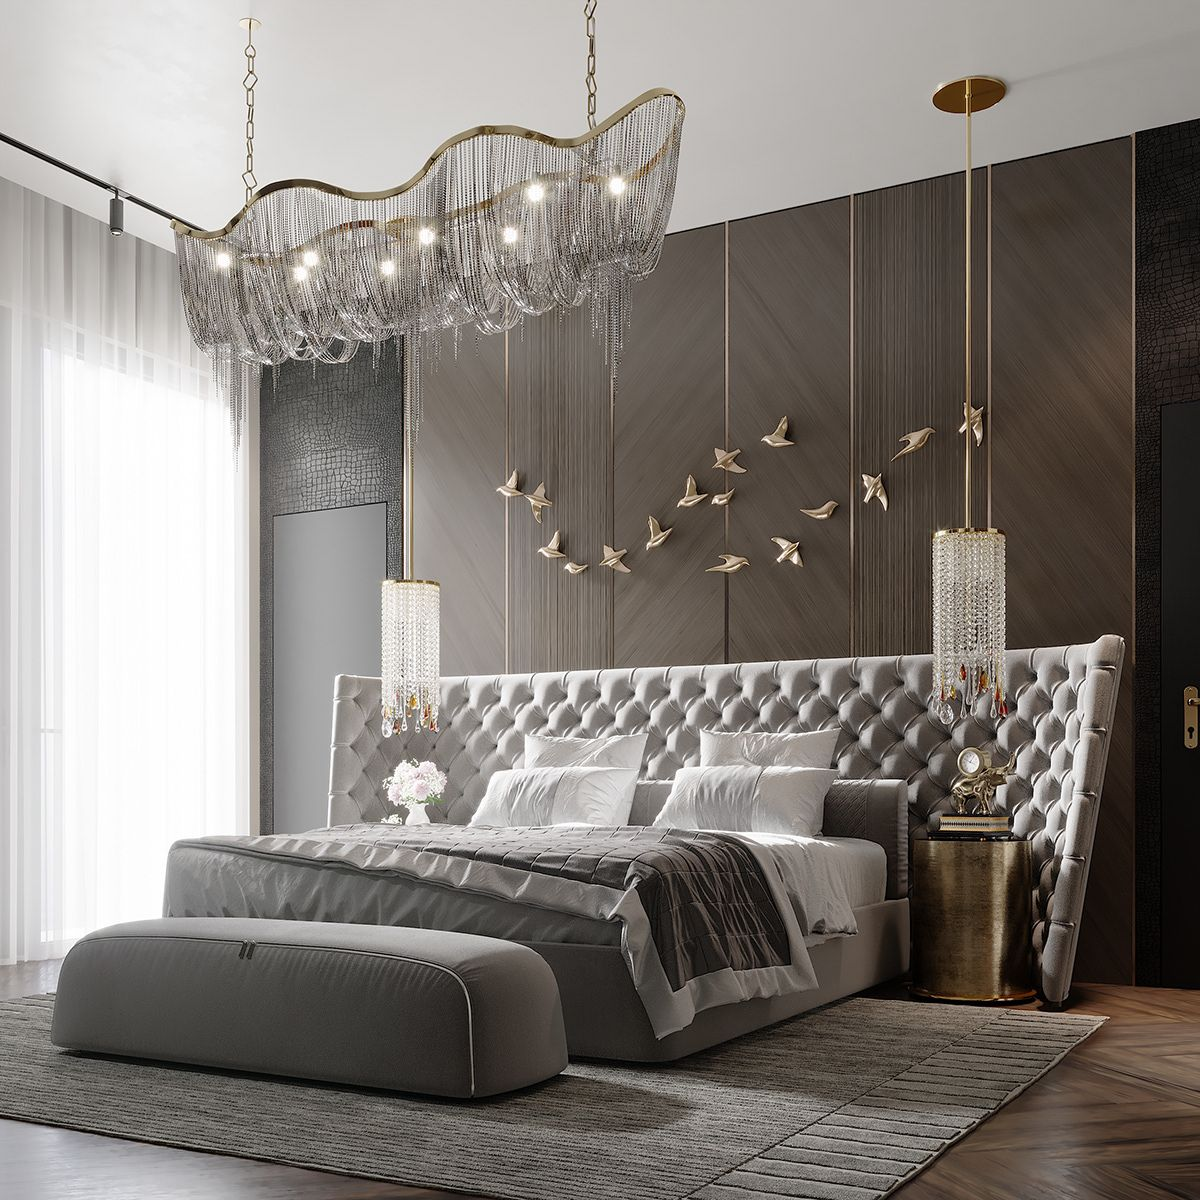 Bedroom In Contemporary Style On Behance: CONTEMPORARY BEDROOM On Behance In 2020